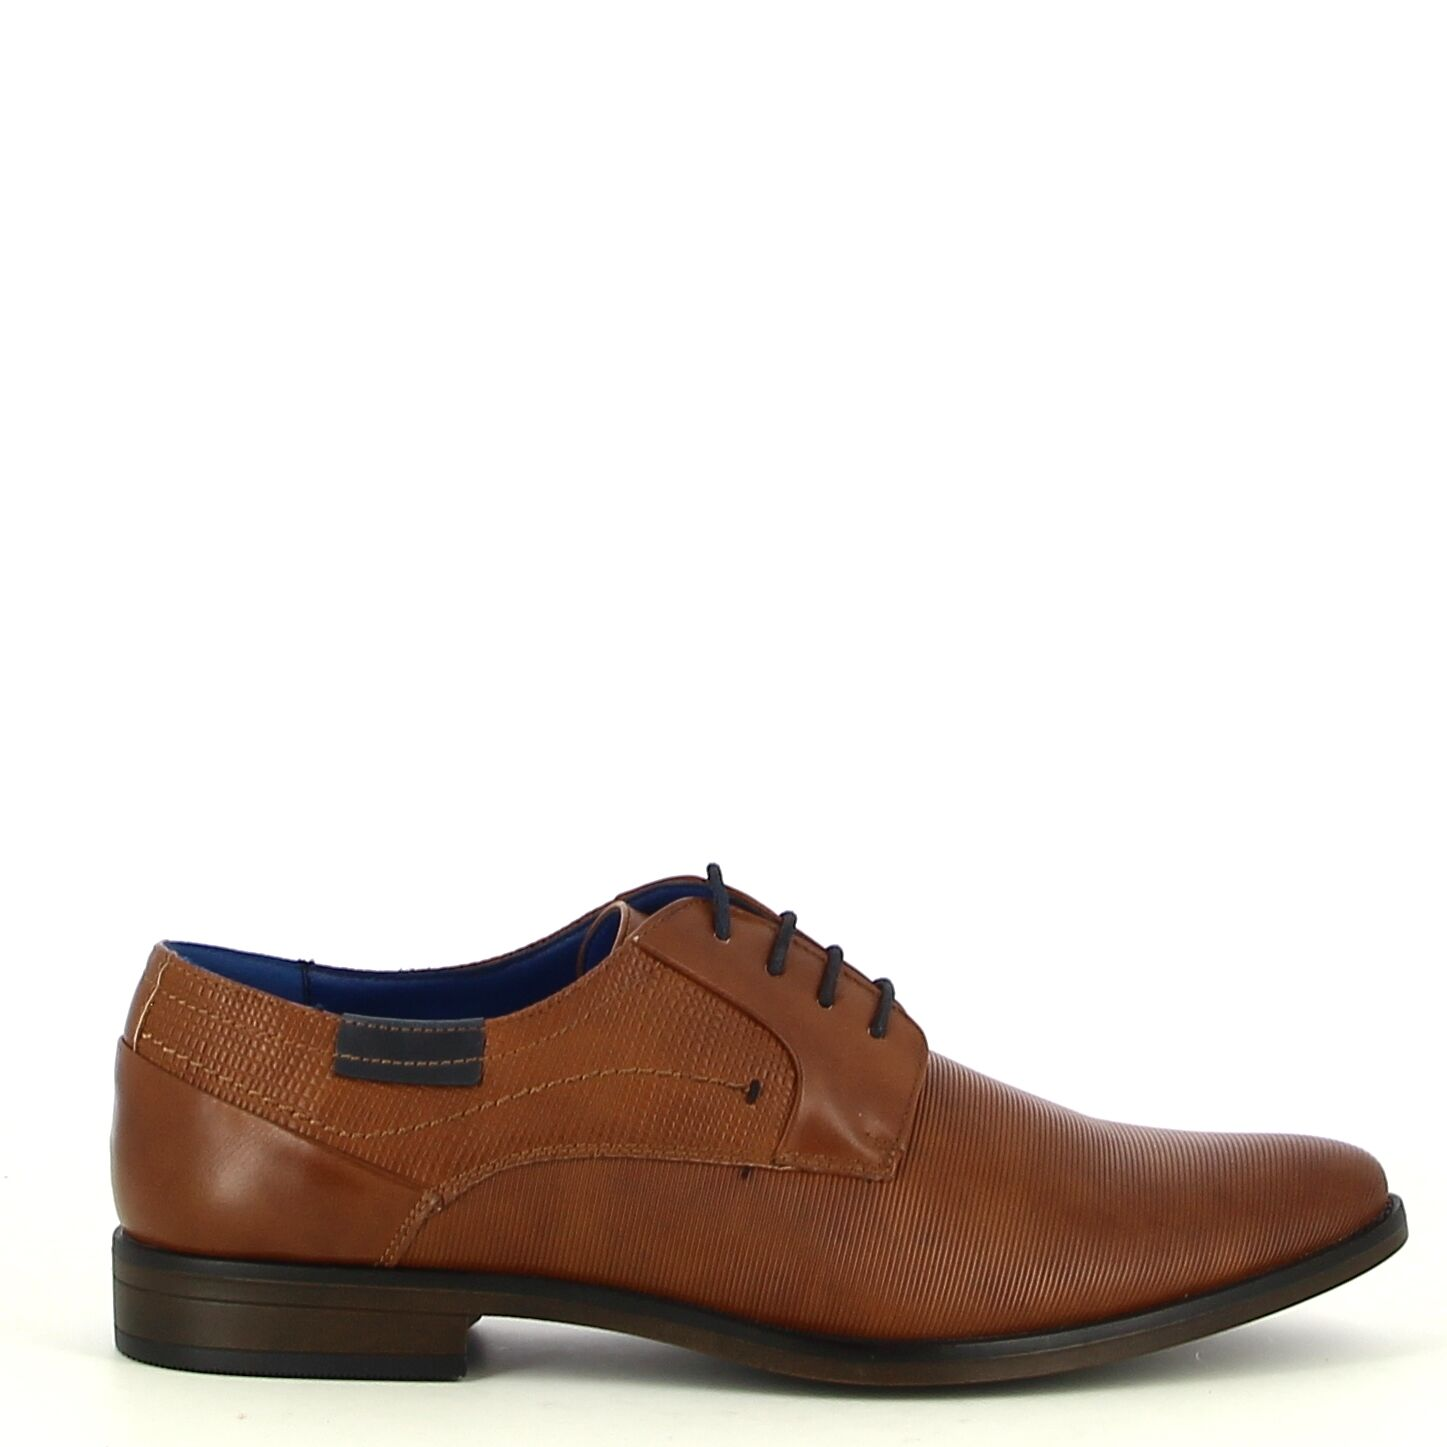 Ken Shoe Fashion - Camel veterschoen met navy details